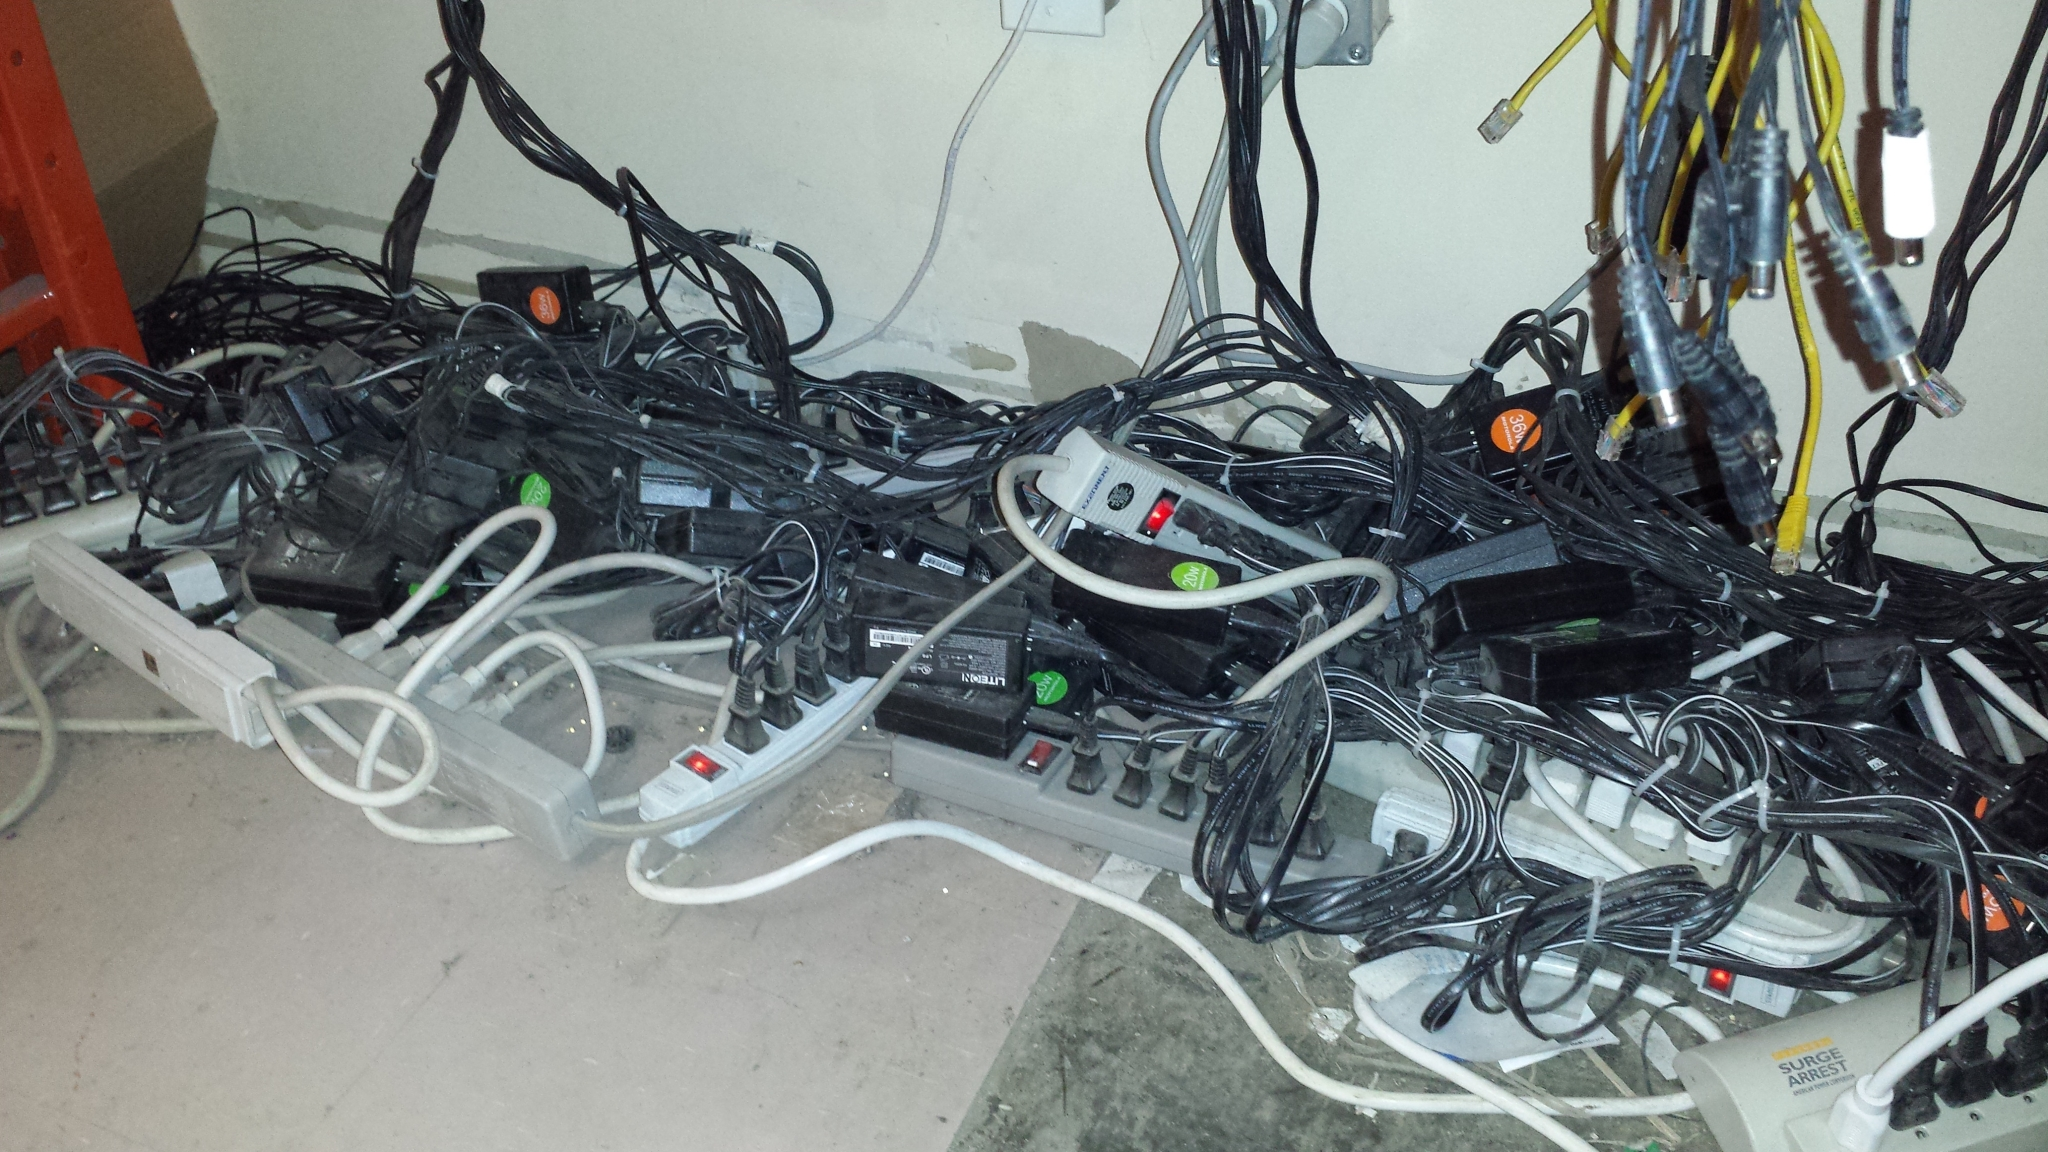 Wiring Cable Outlet 10 Things Not To Do With Multi Power Strips Overloaded